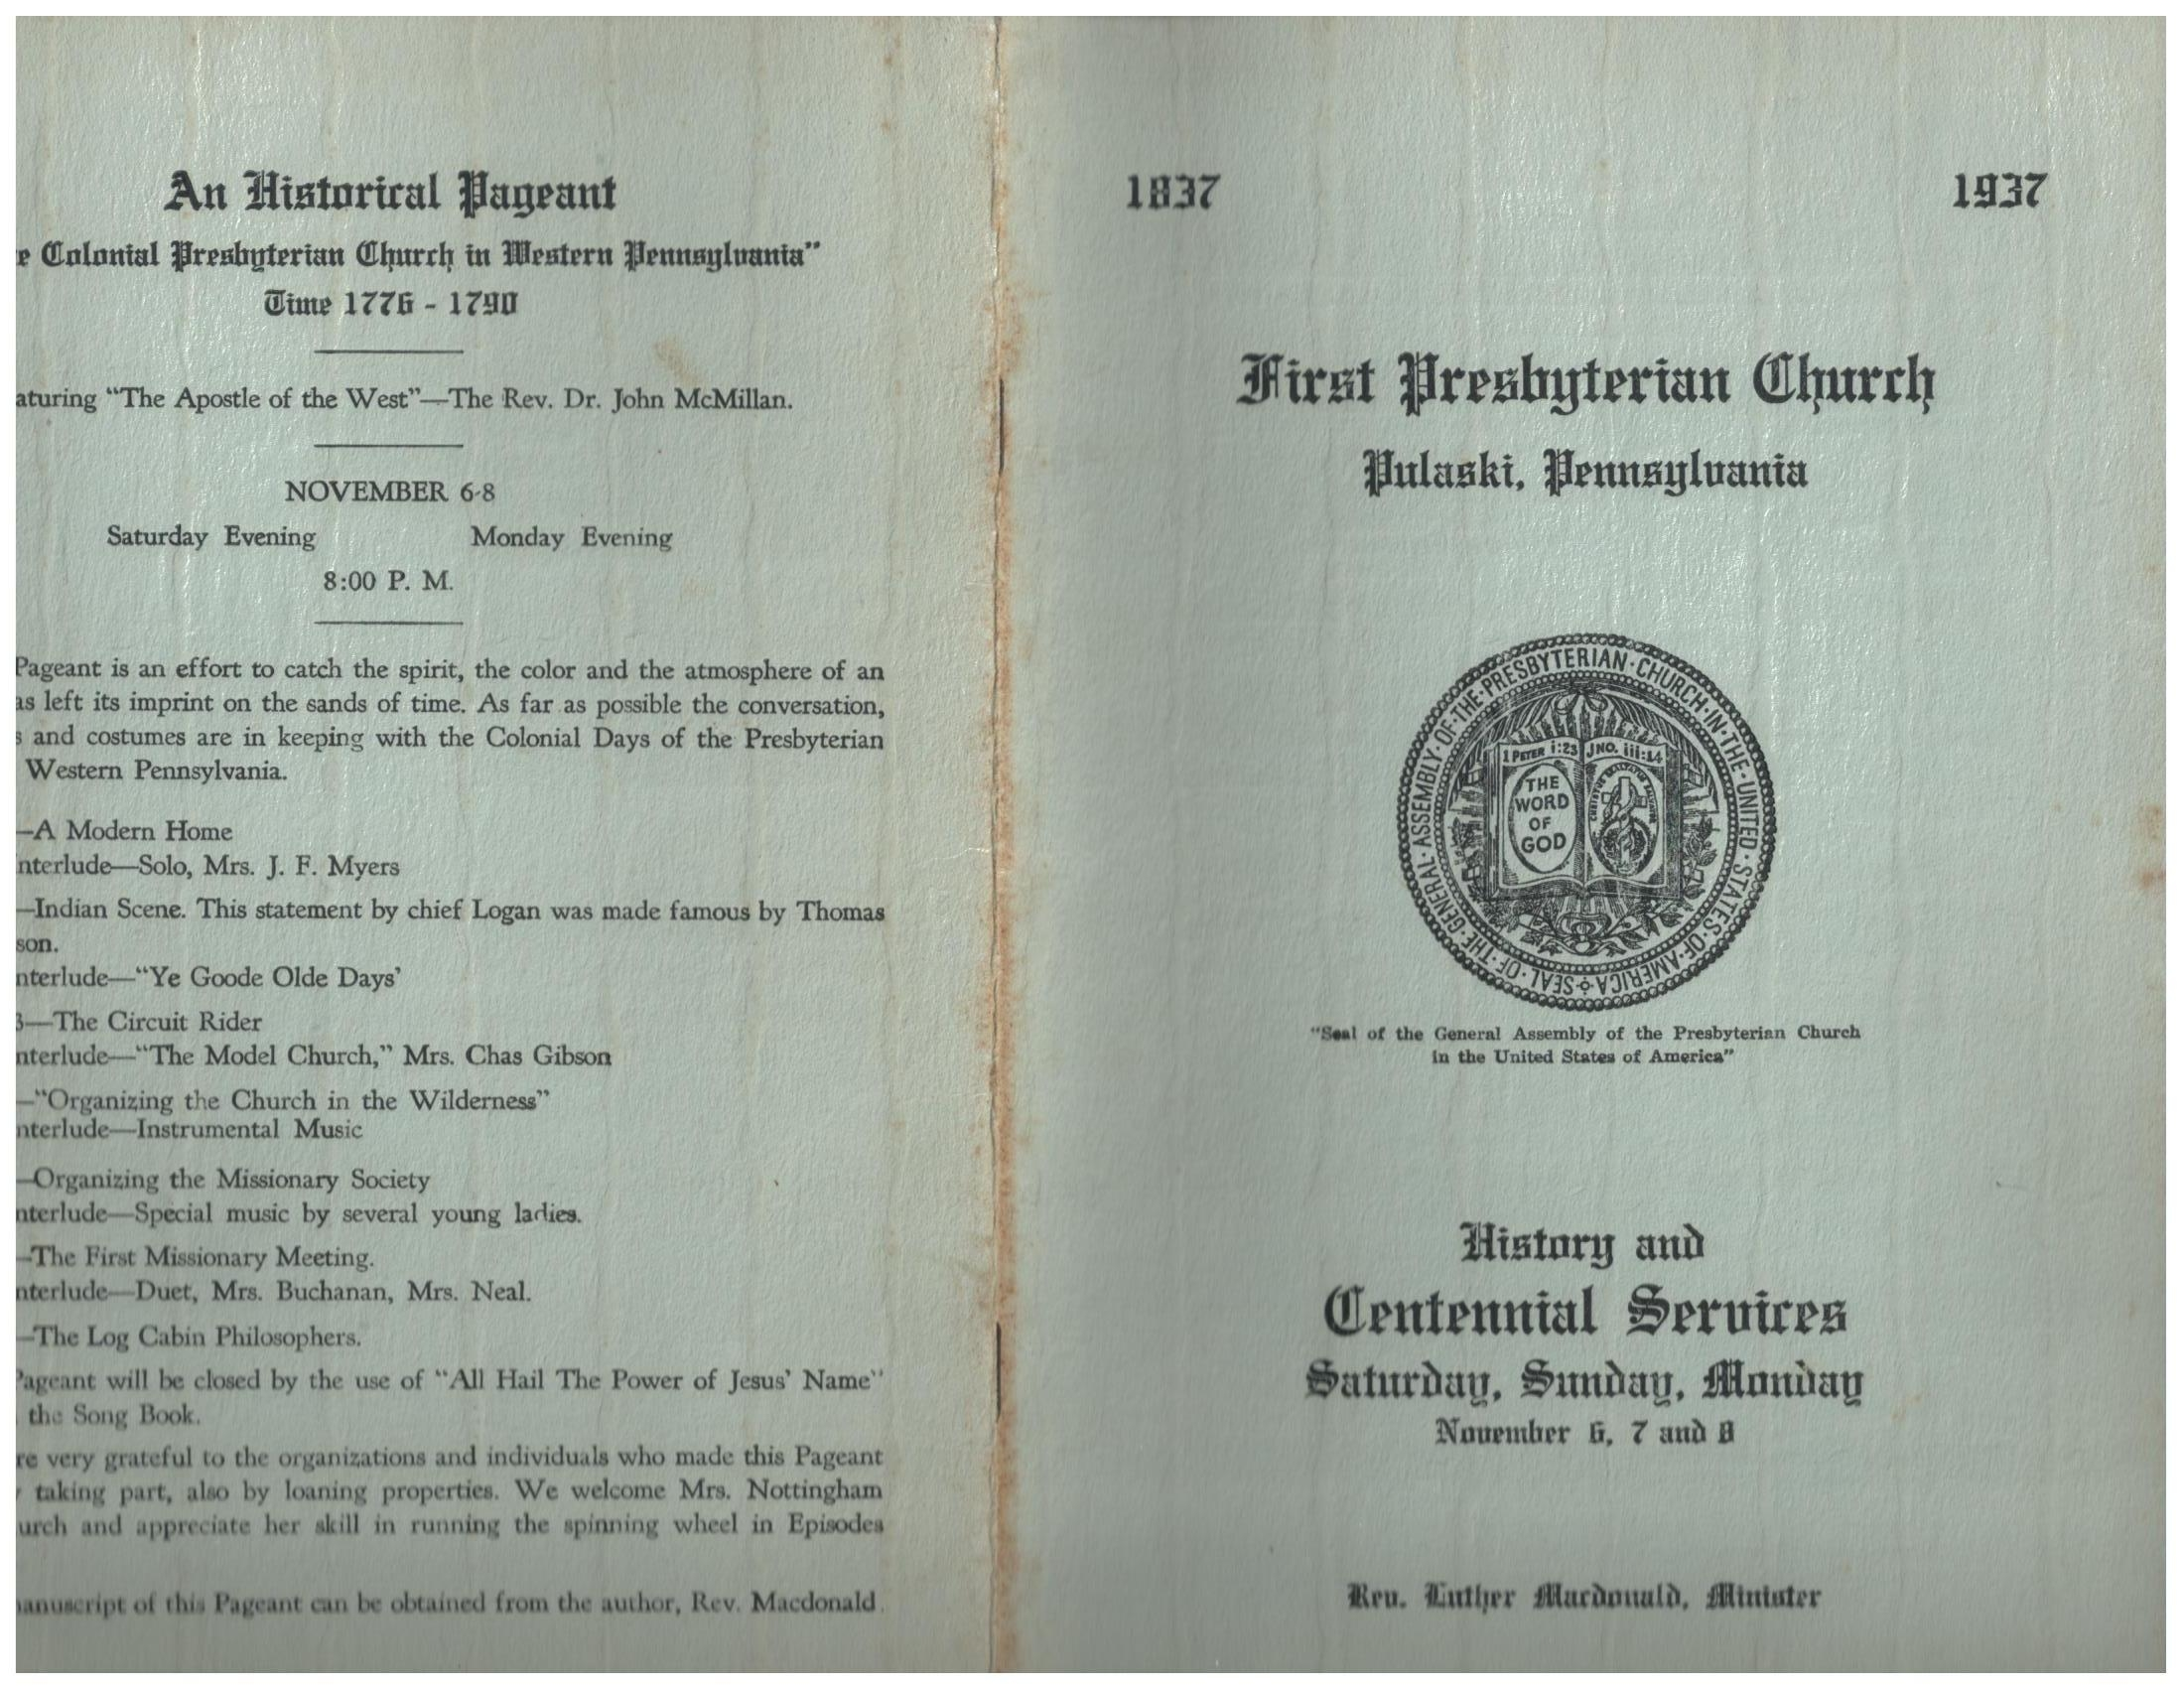 Pulaski Presbyterian Church Centennial celebration 1837-1937